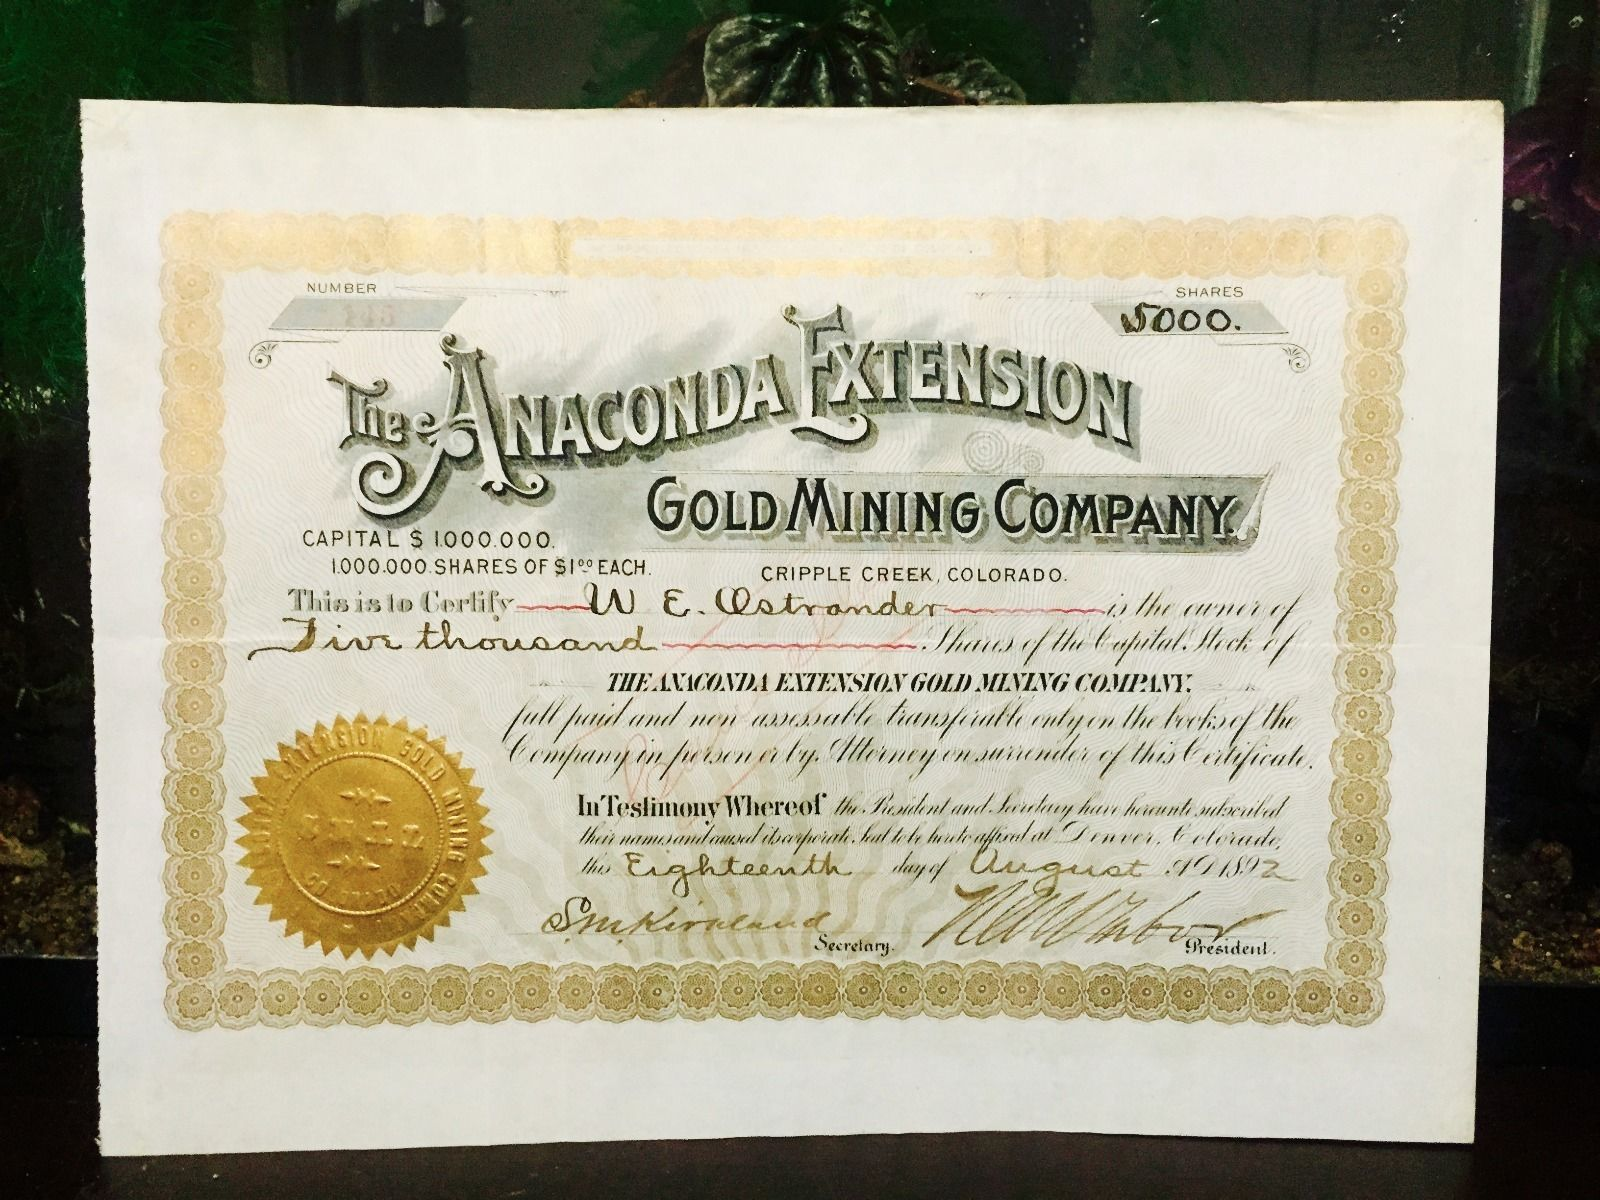 Anaconda Extension Gold Mining Company Stock of Cripple Creek